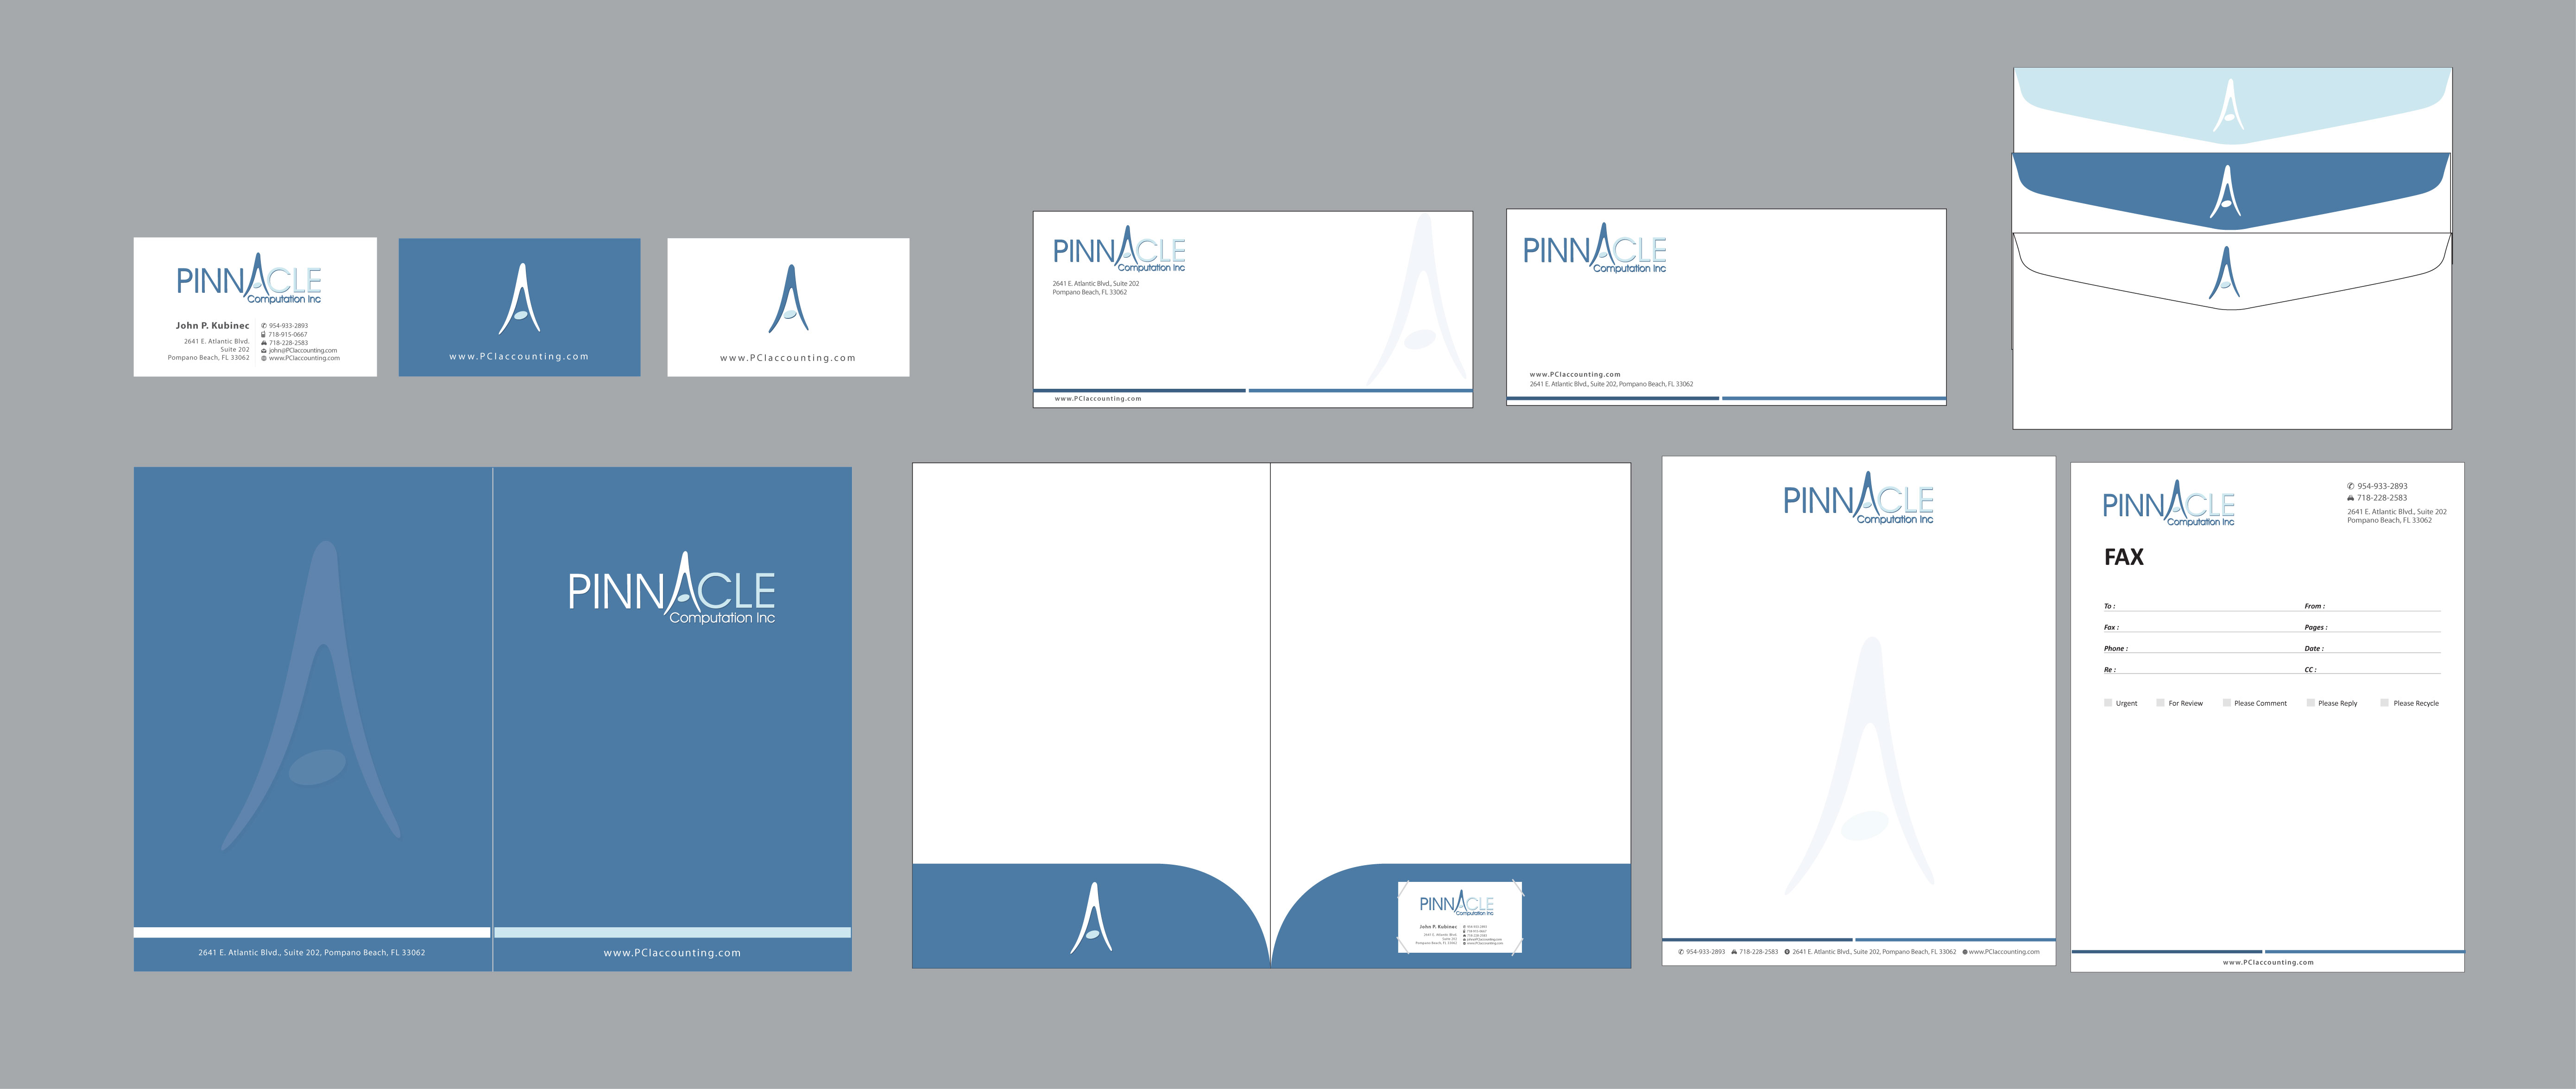 Accounting Firm - Biz Cards, Folders & Stationary - Financial Services